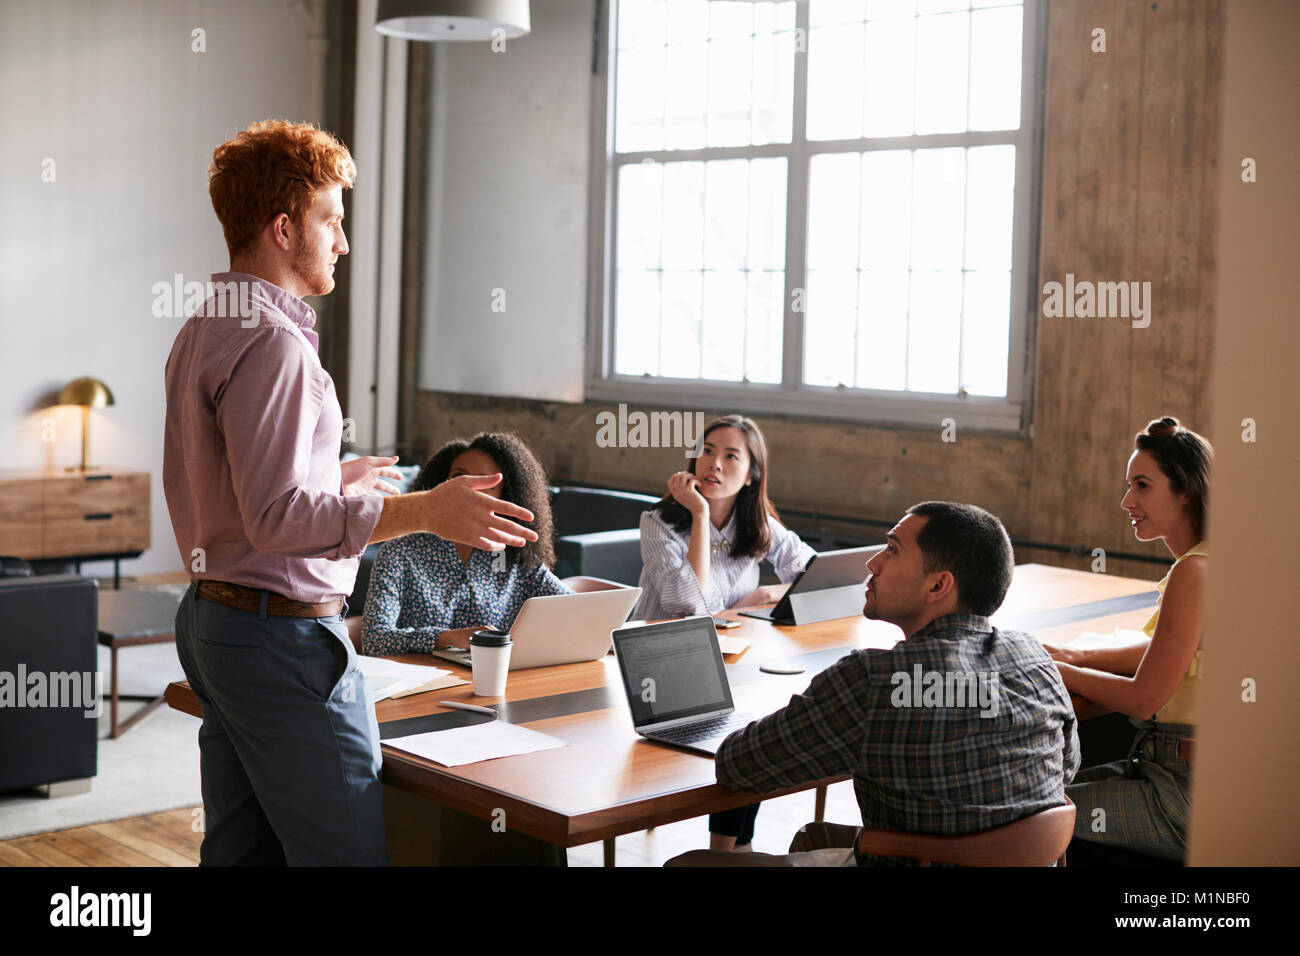 Young man standing to address colleagues at a work meeting Stock Photo